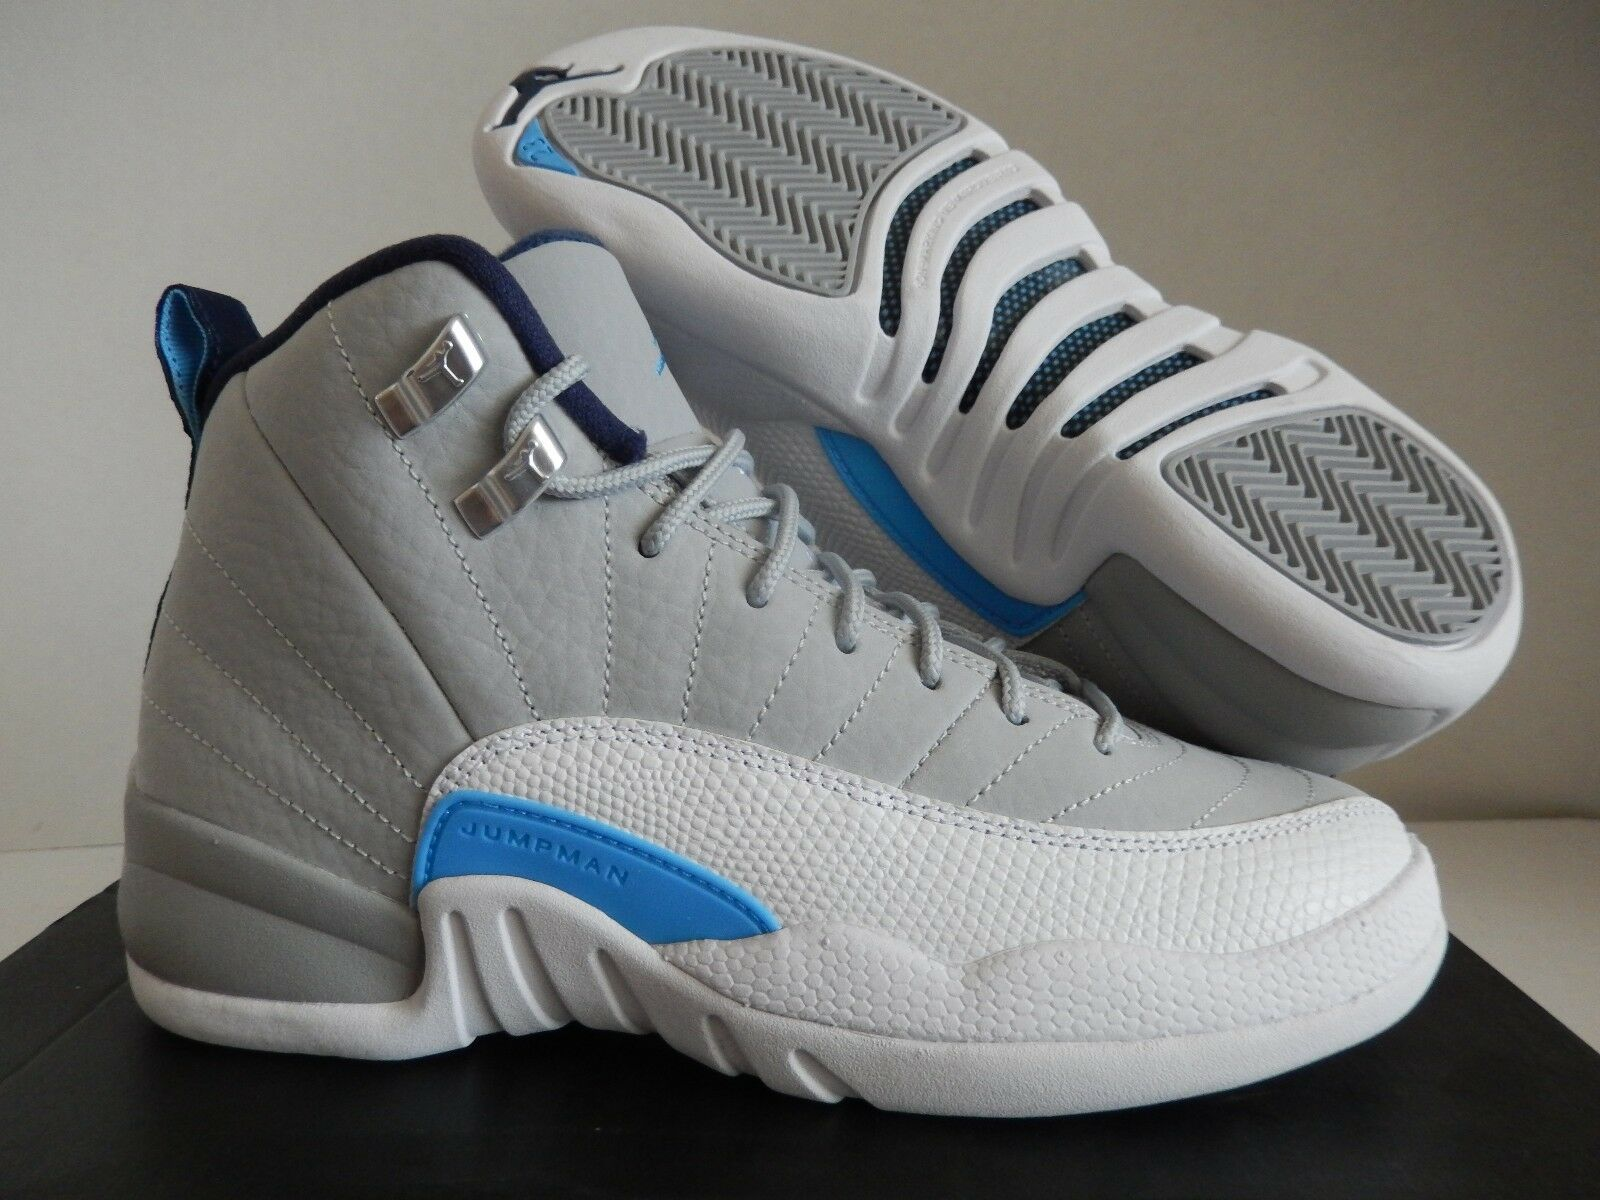 Nike air jordan 12 retrò bg lupo grey-blue zio sz 5y - donne sz - 153265-007]